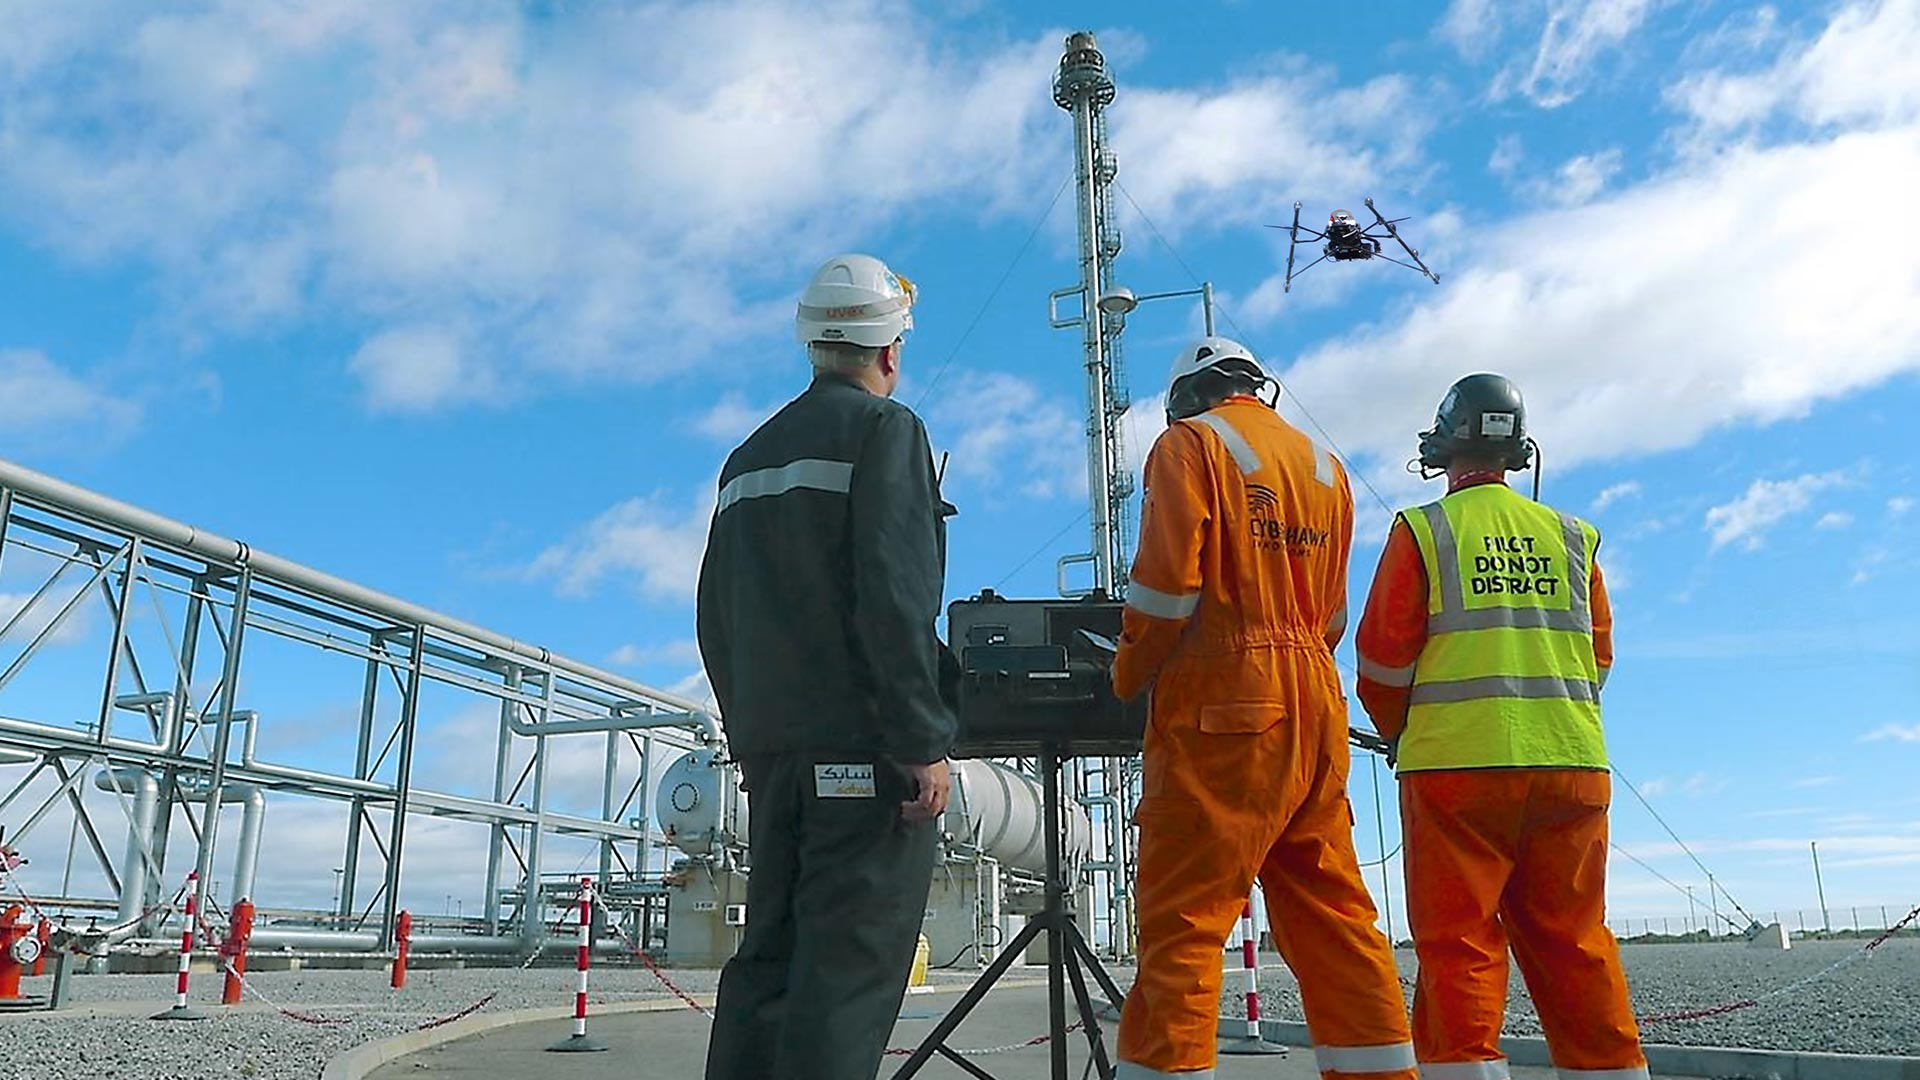 AscTec-falcon-8-inspection-safe-high-tech-drone-automation-thermal-oil-rig